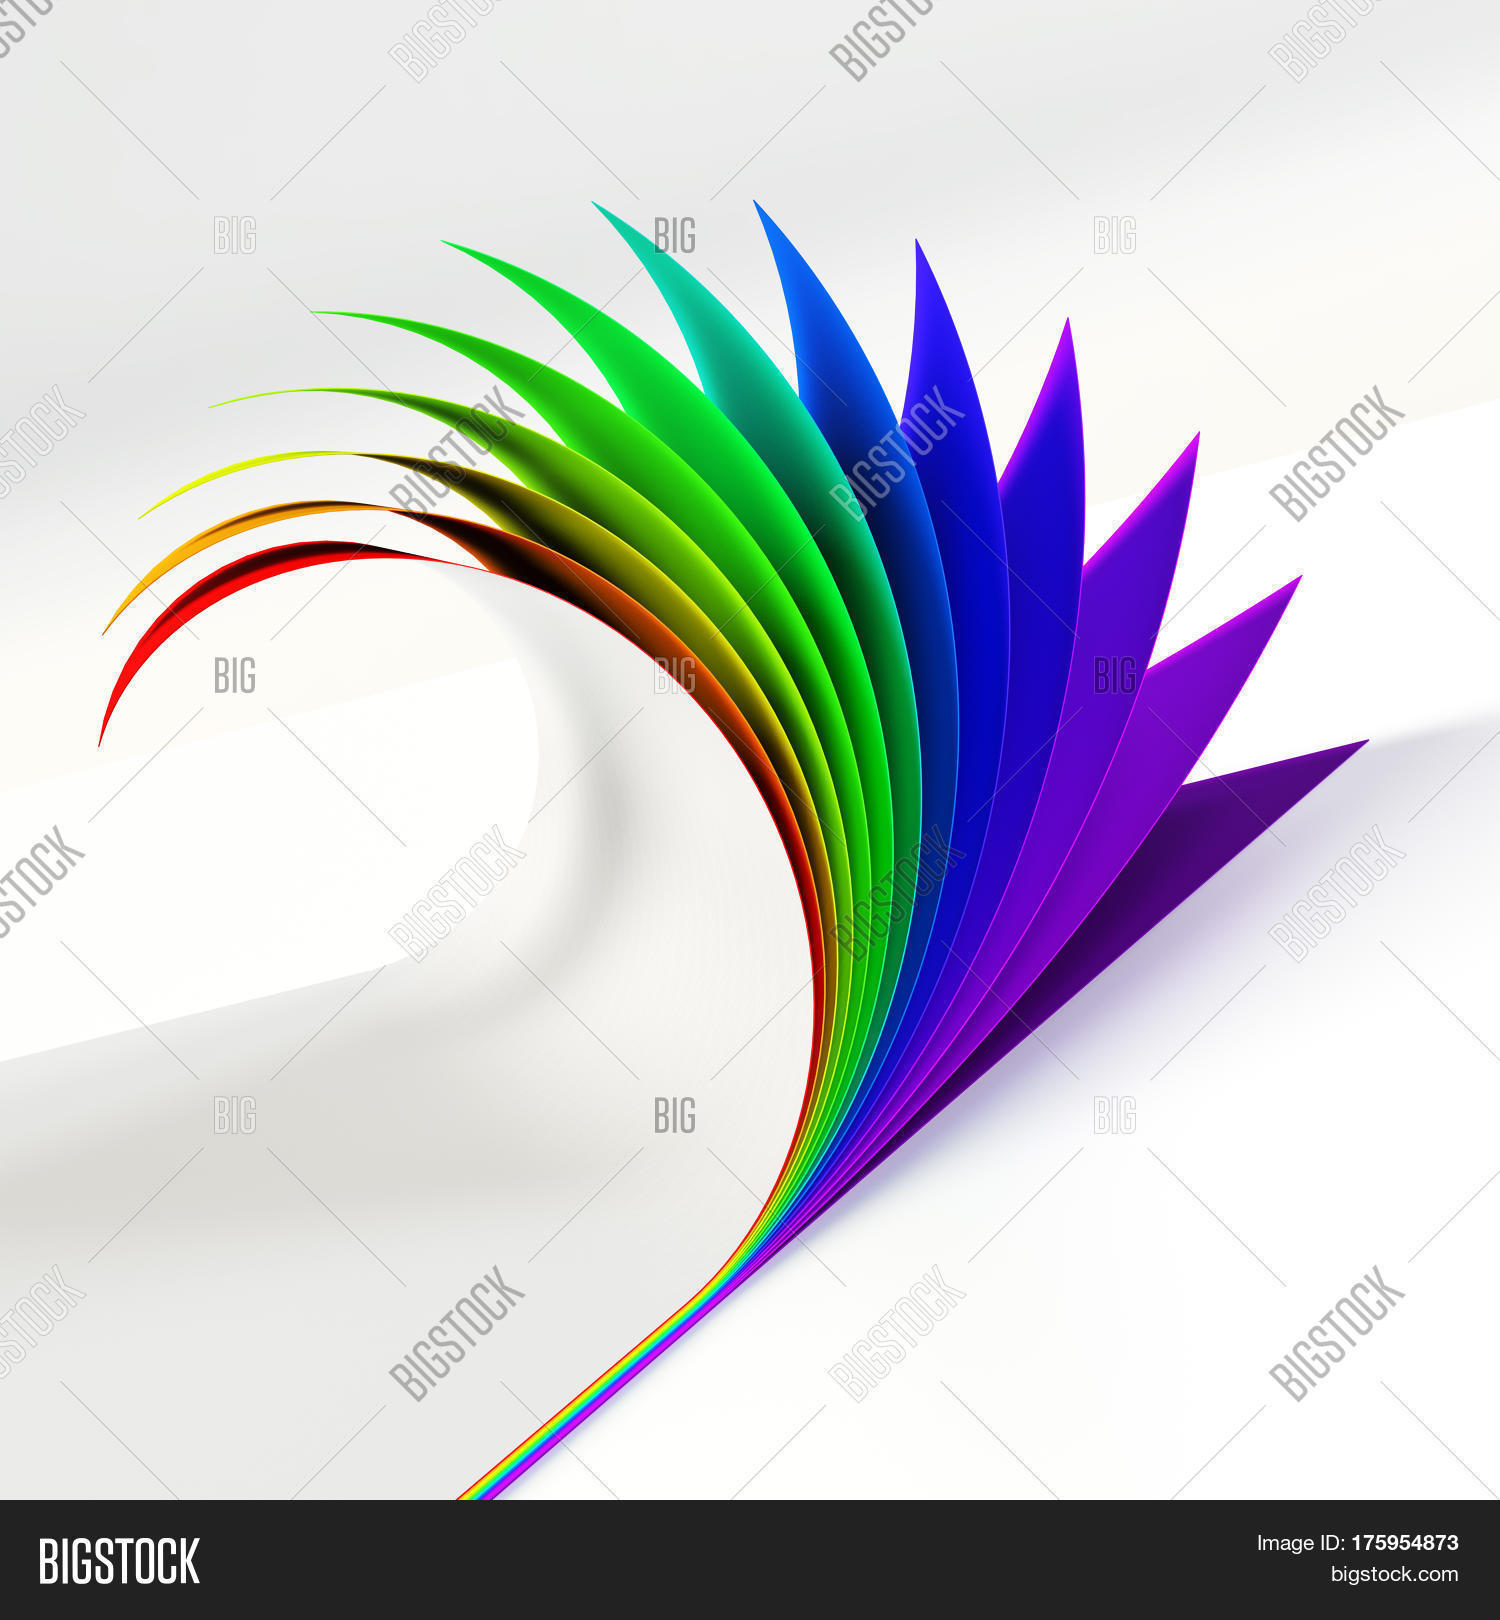 blank document rainbow image photo free trial bigstock